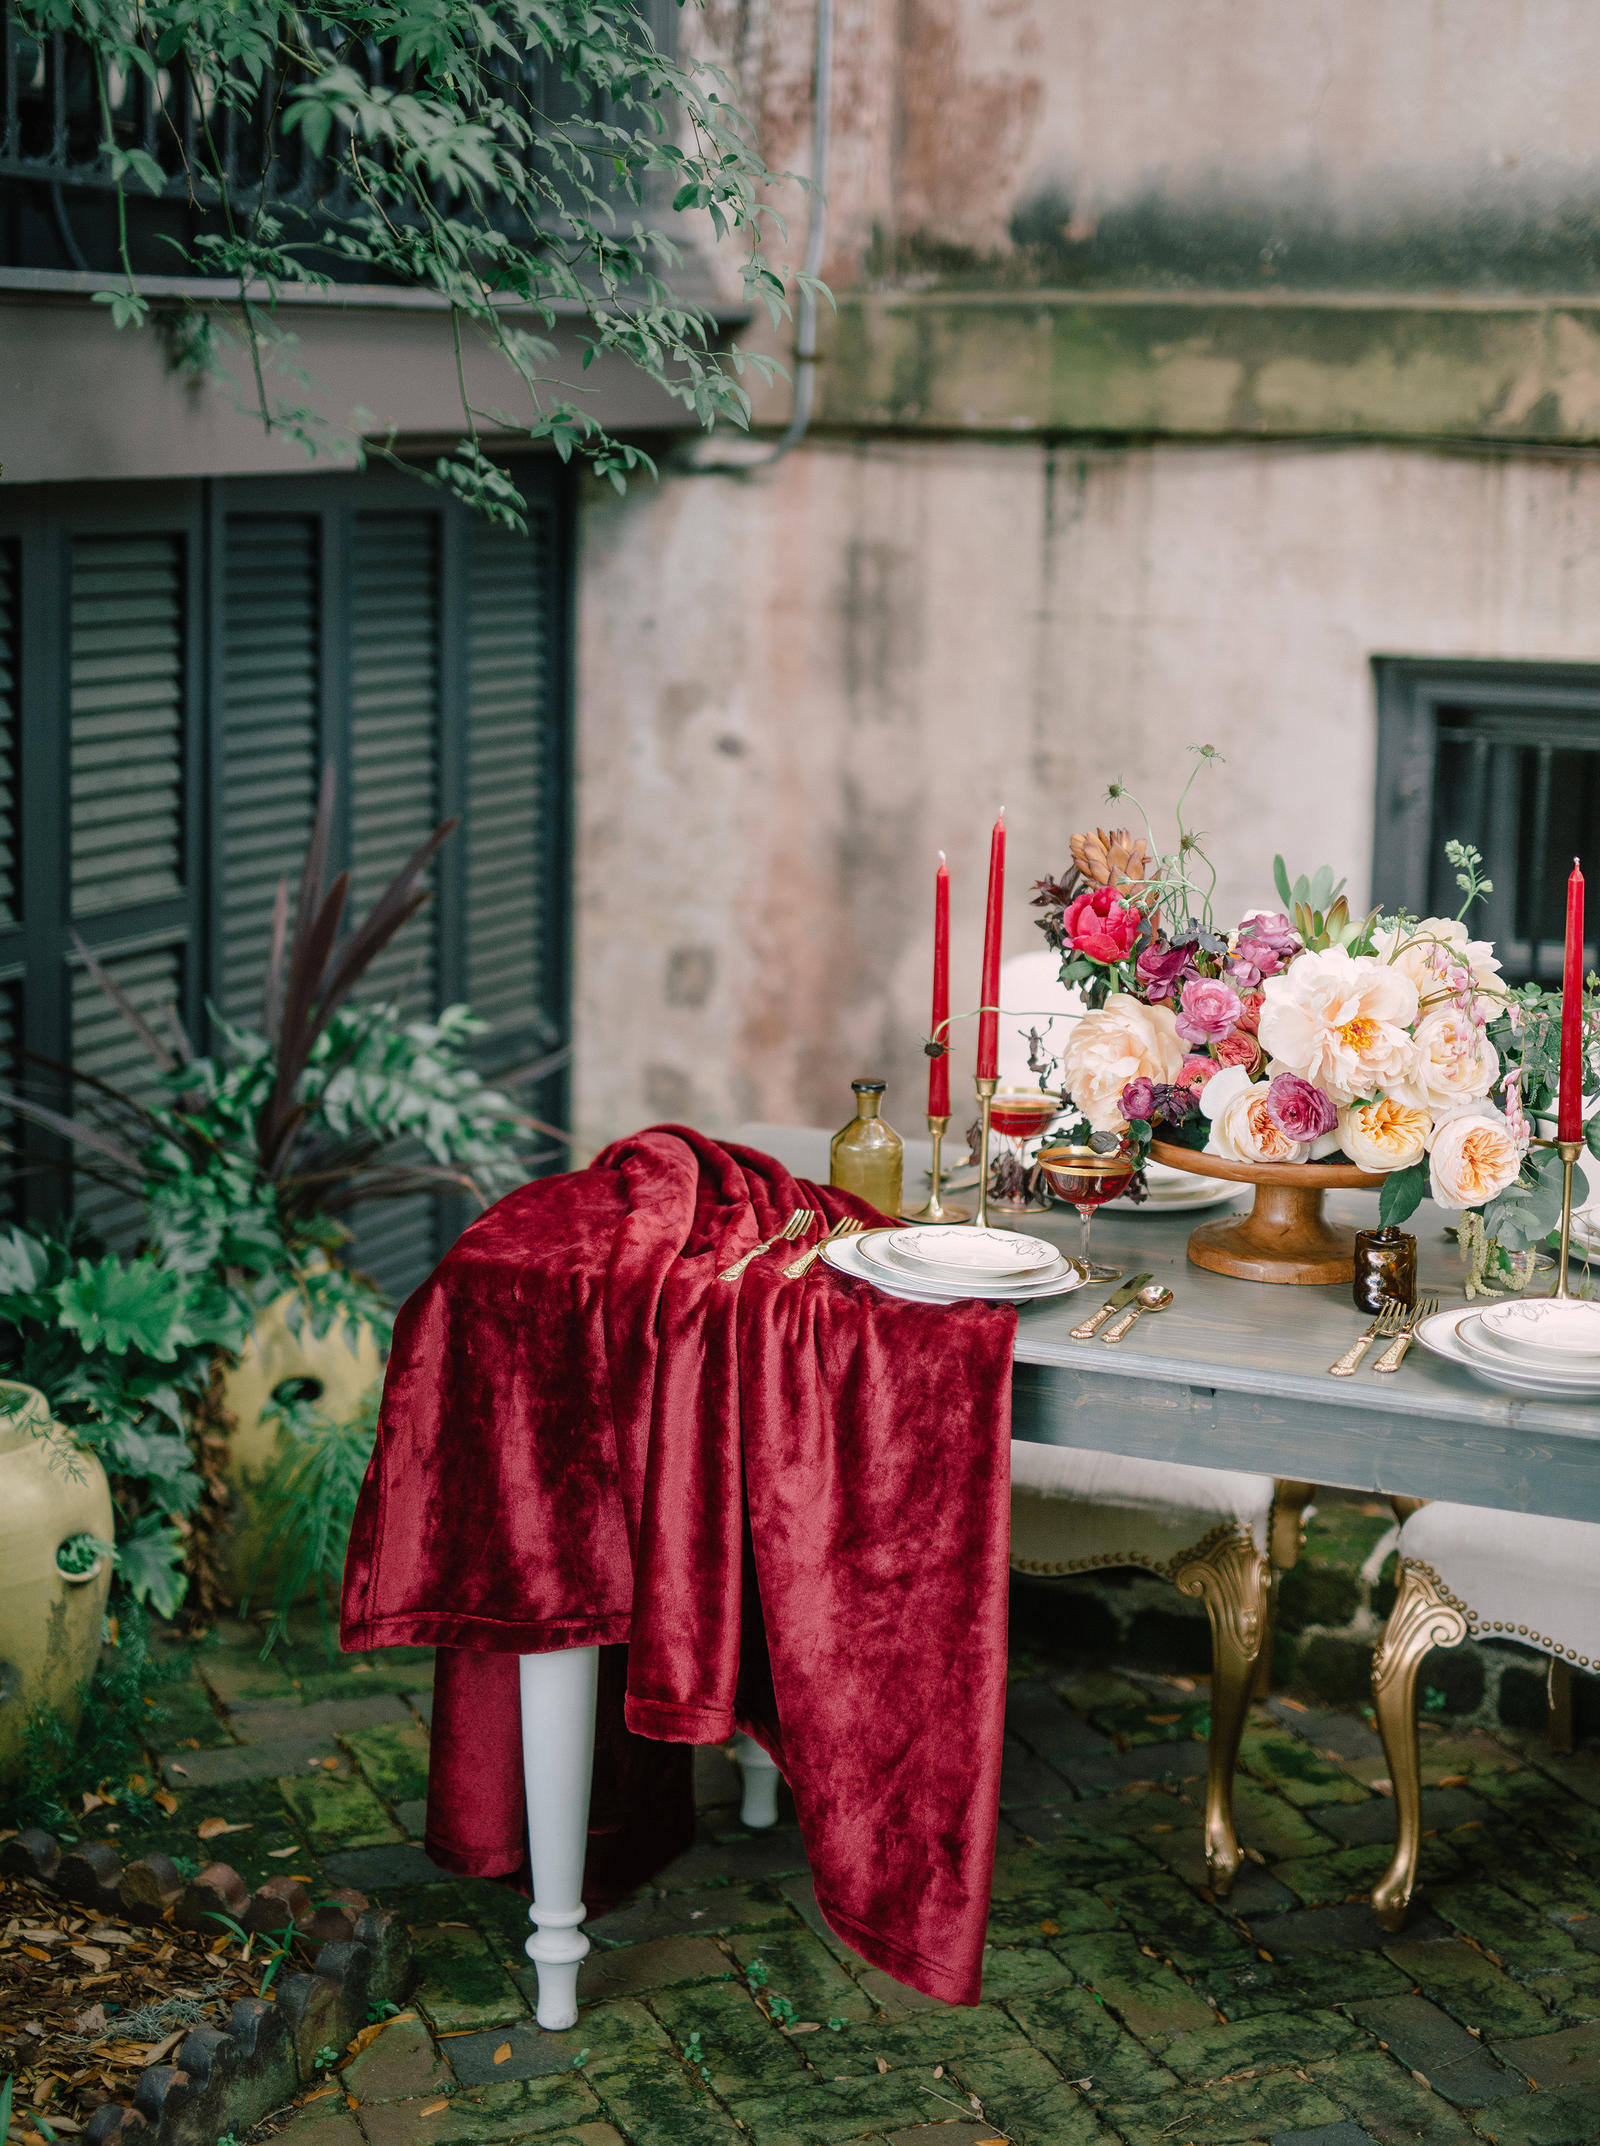 Editorial Photography | Atlanta, GA | A place setting with a crushed red velvet table cloth draped over the side of the table.